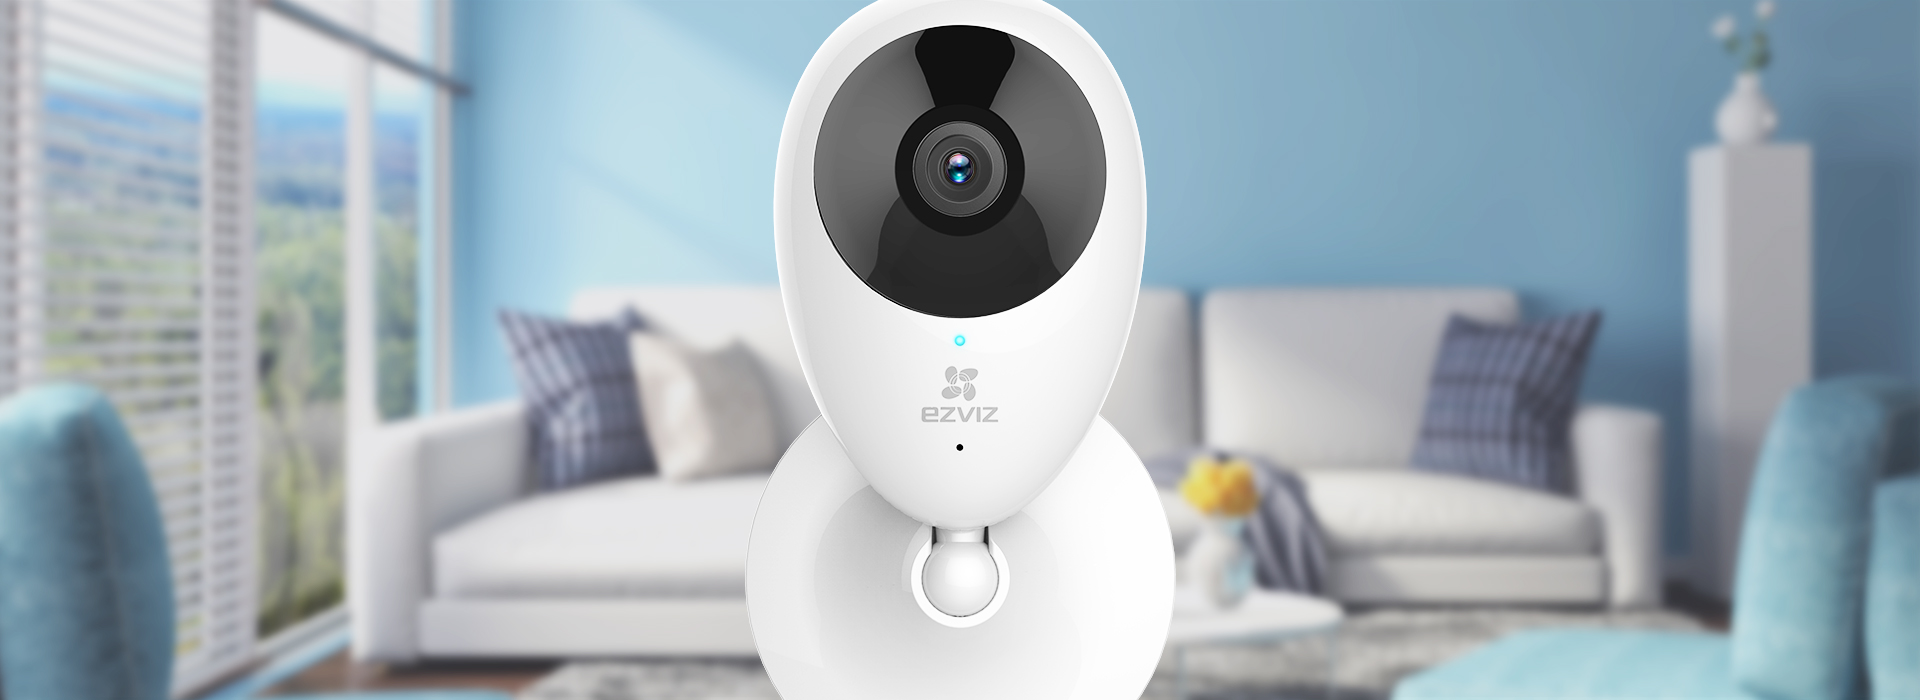 ezviz home security